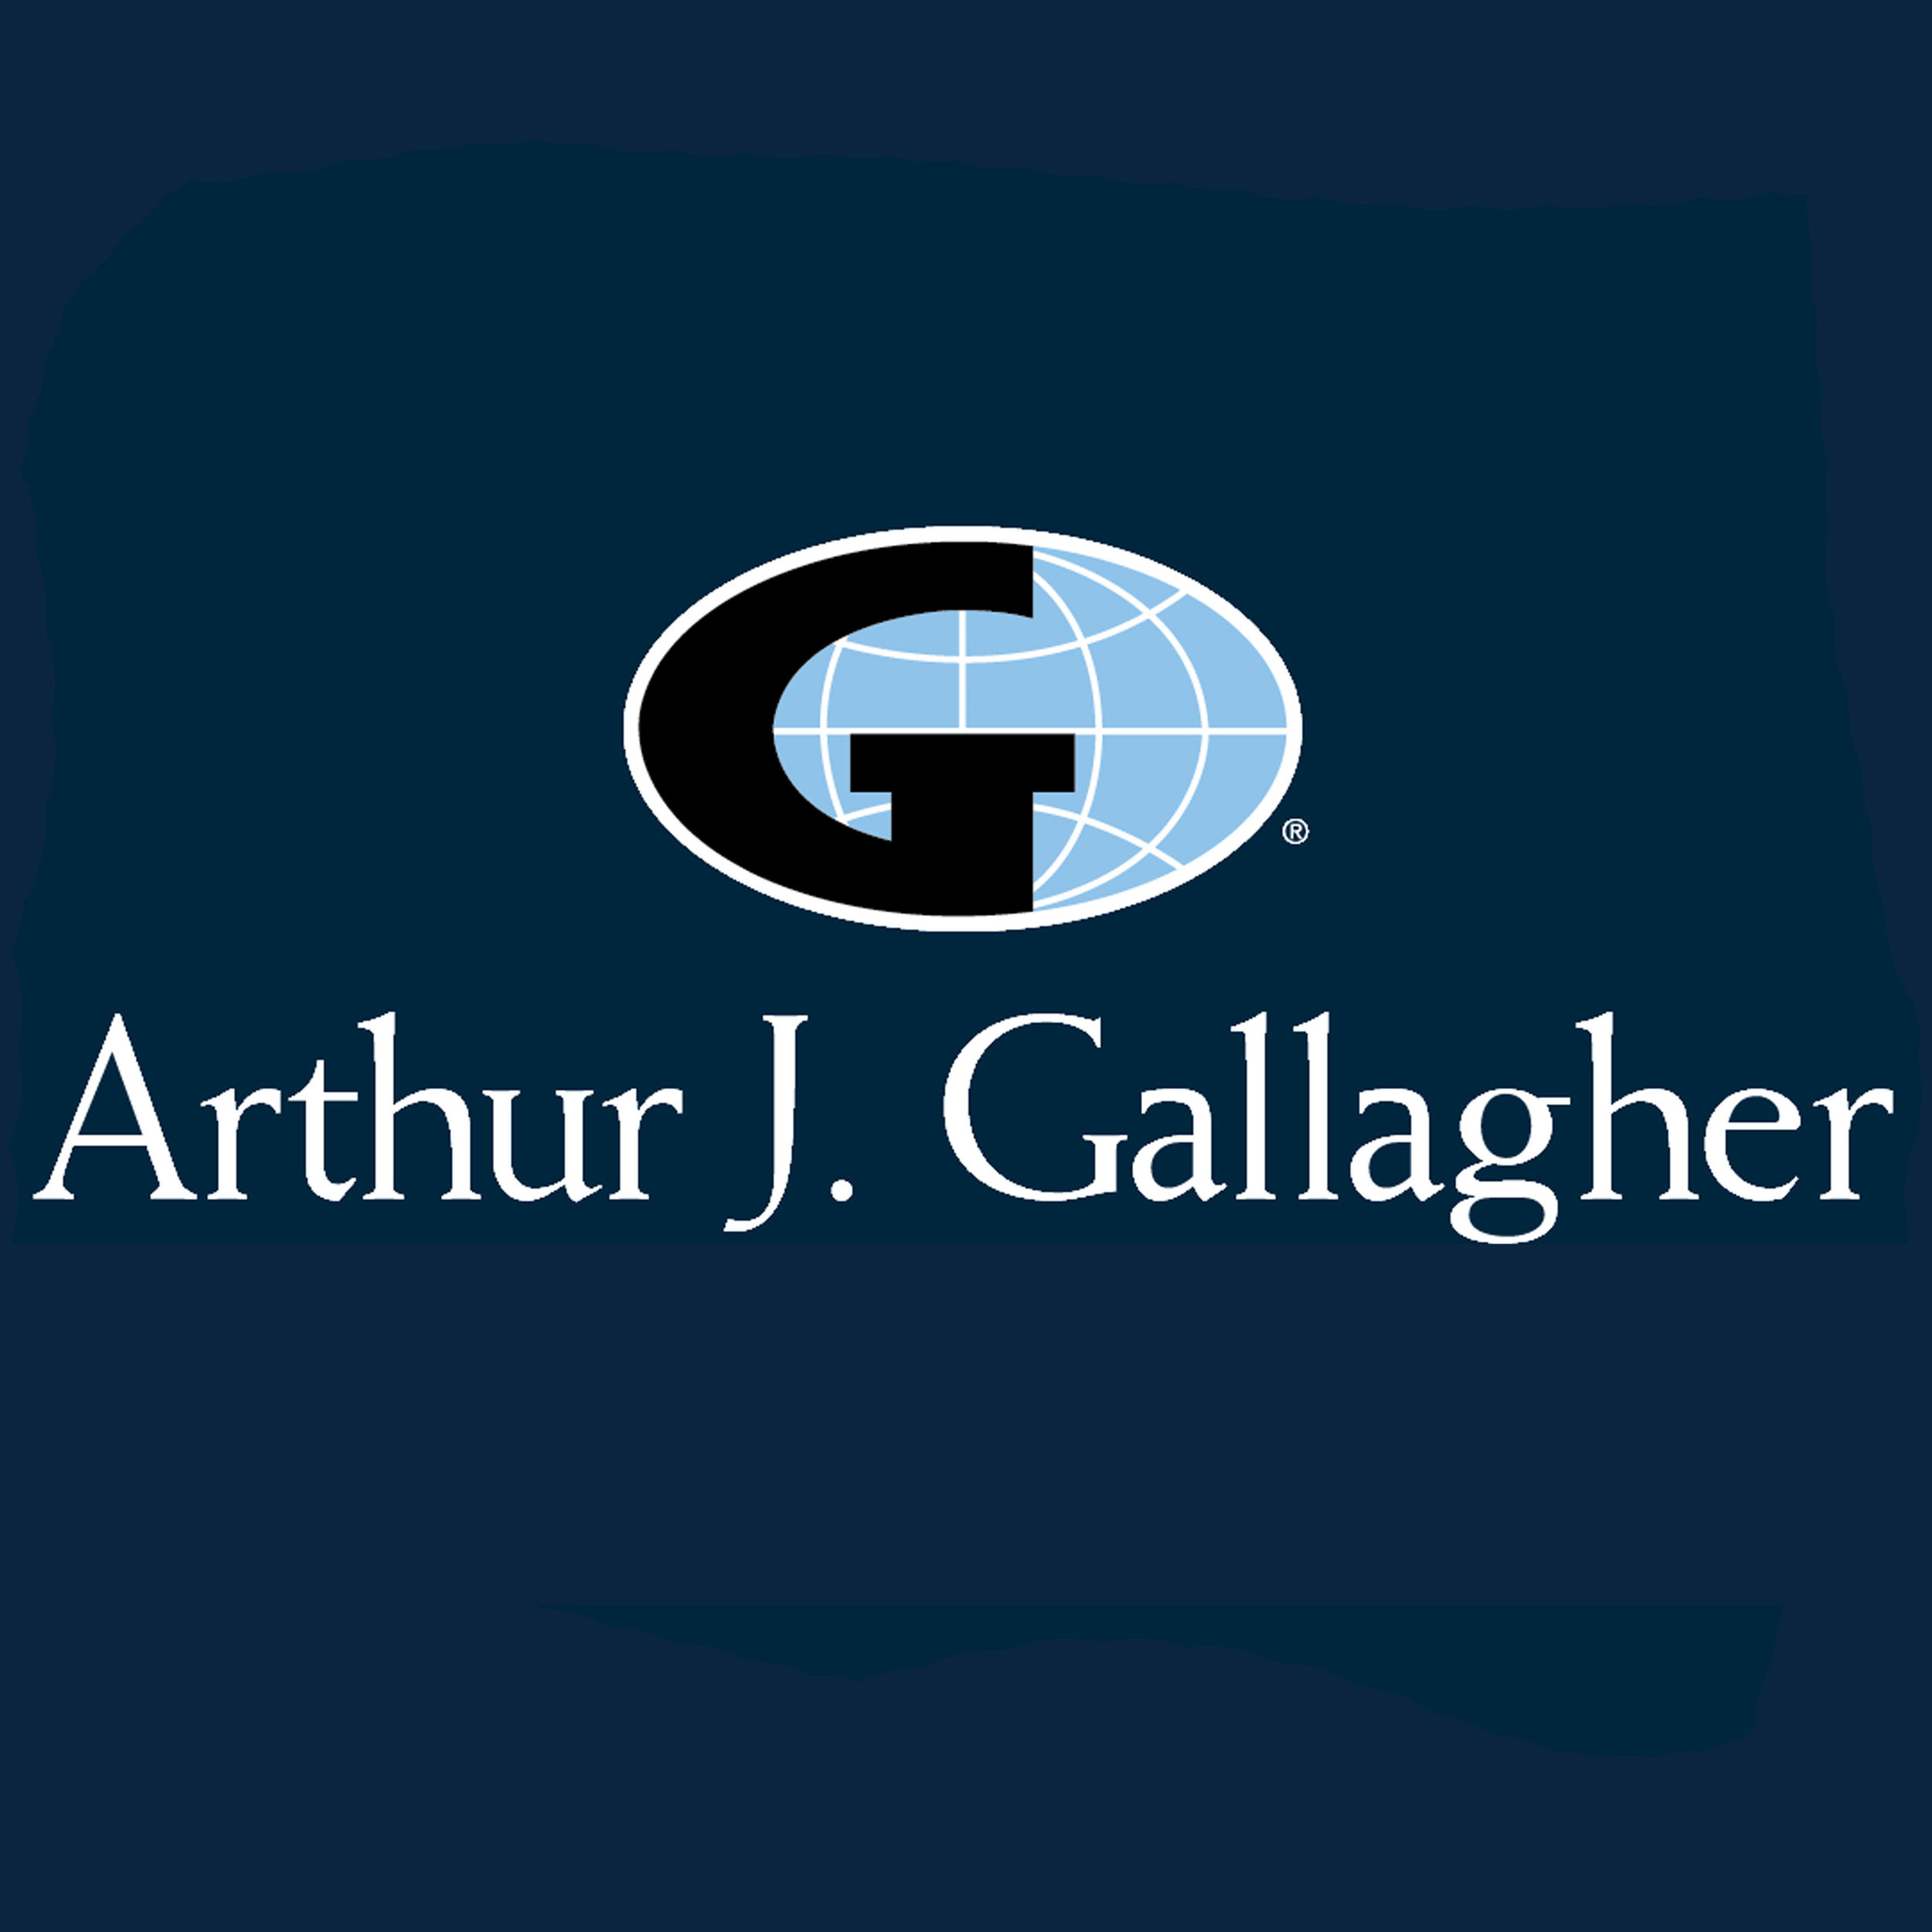 arthur j gallagher insurance.jpg